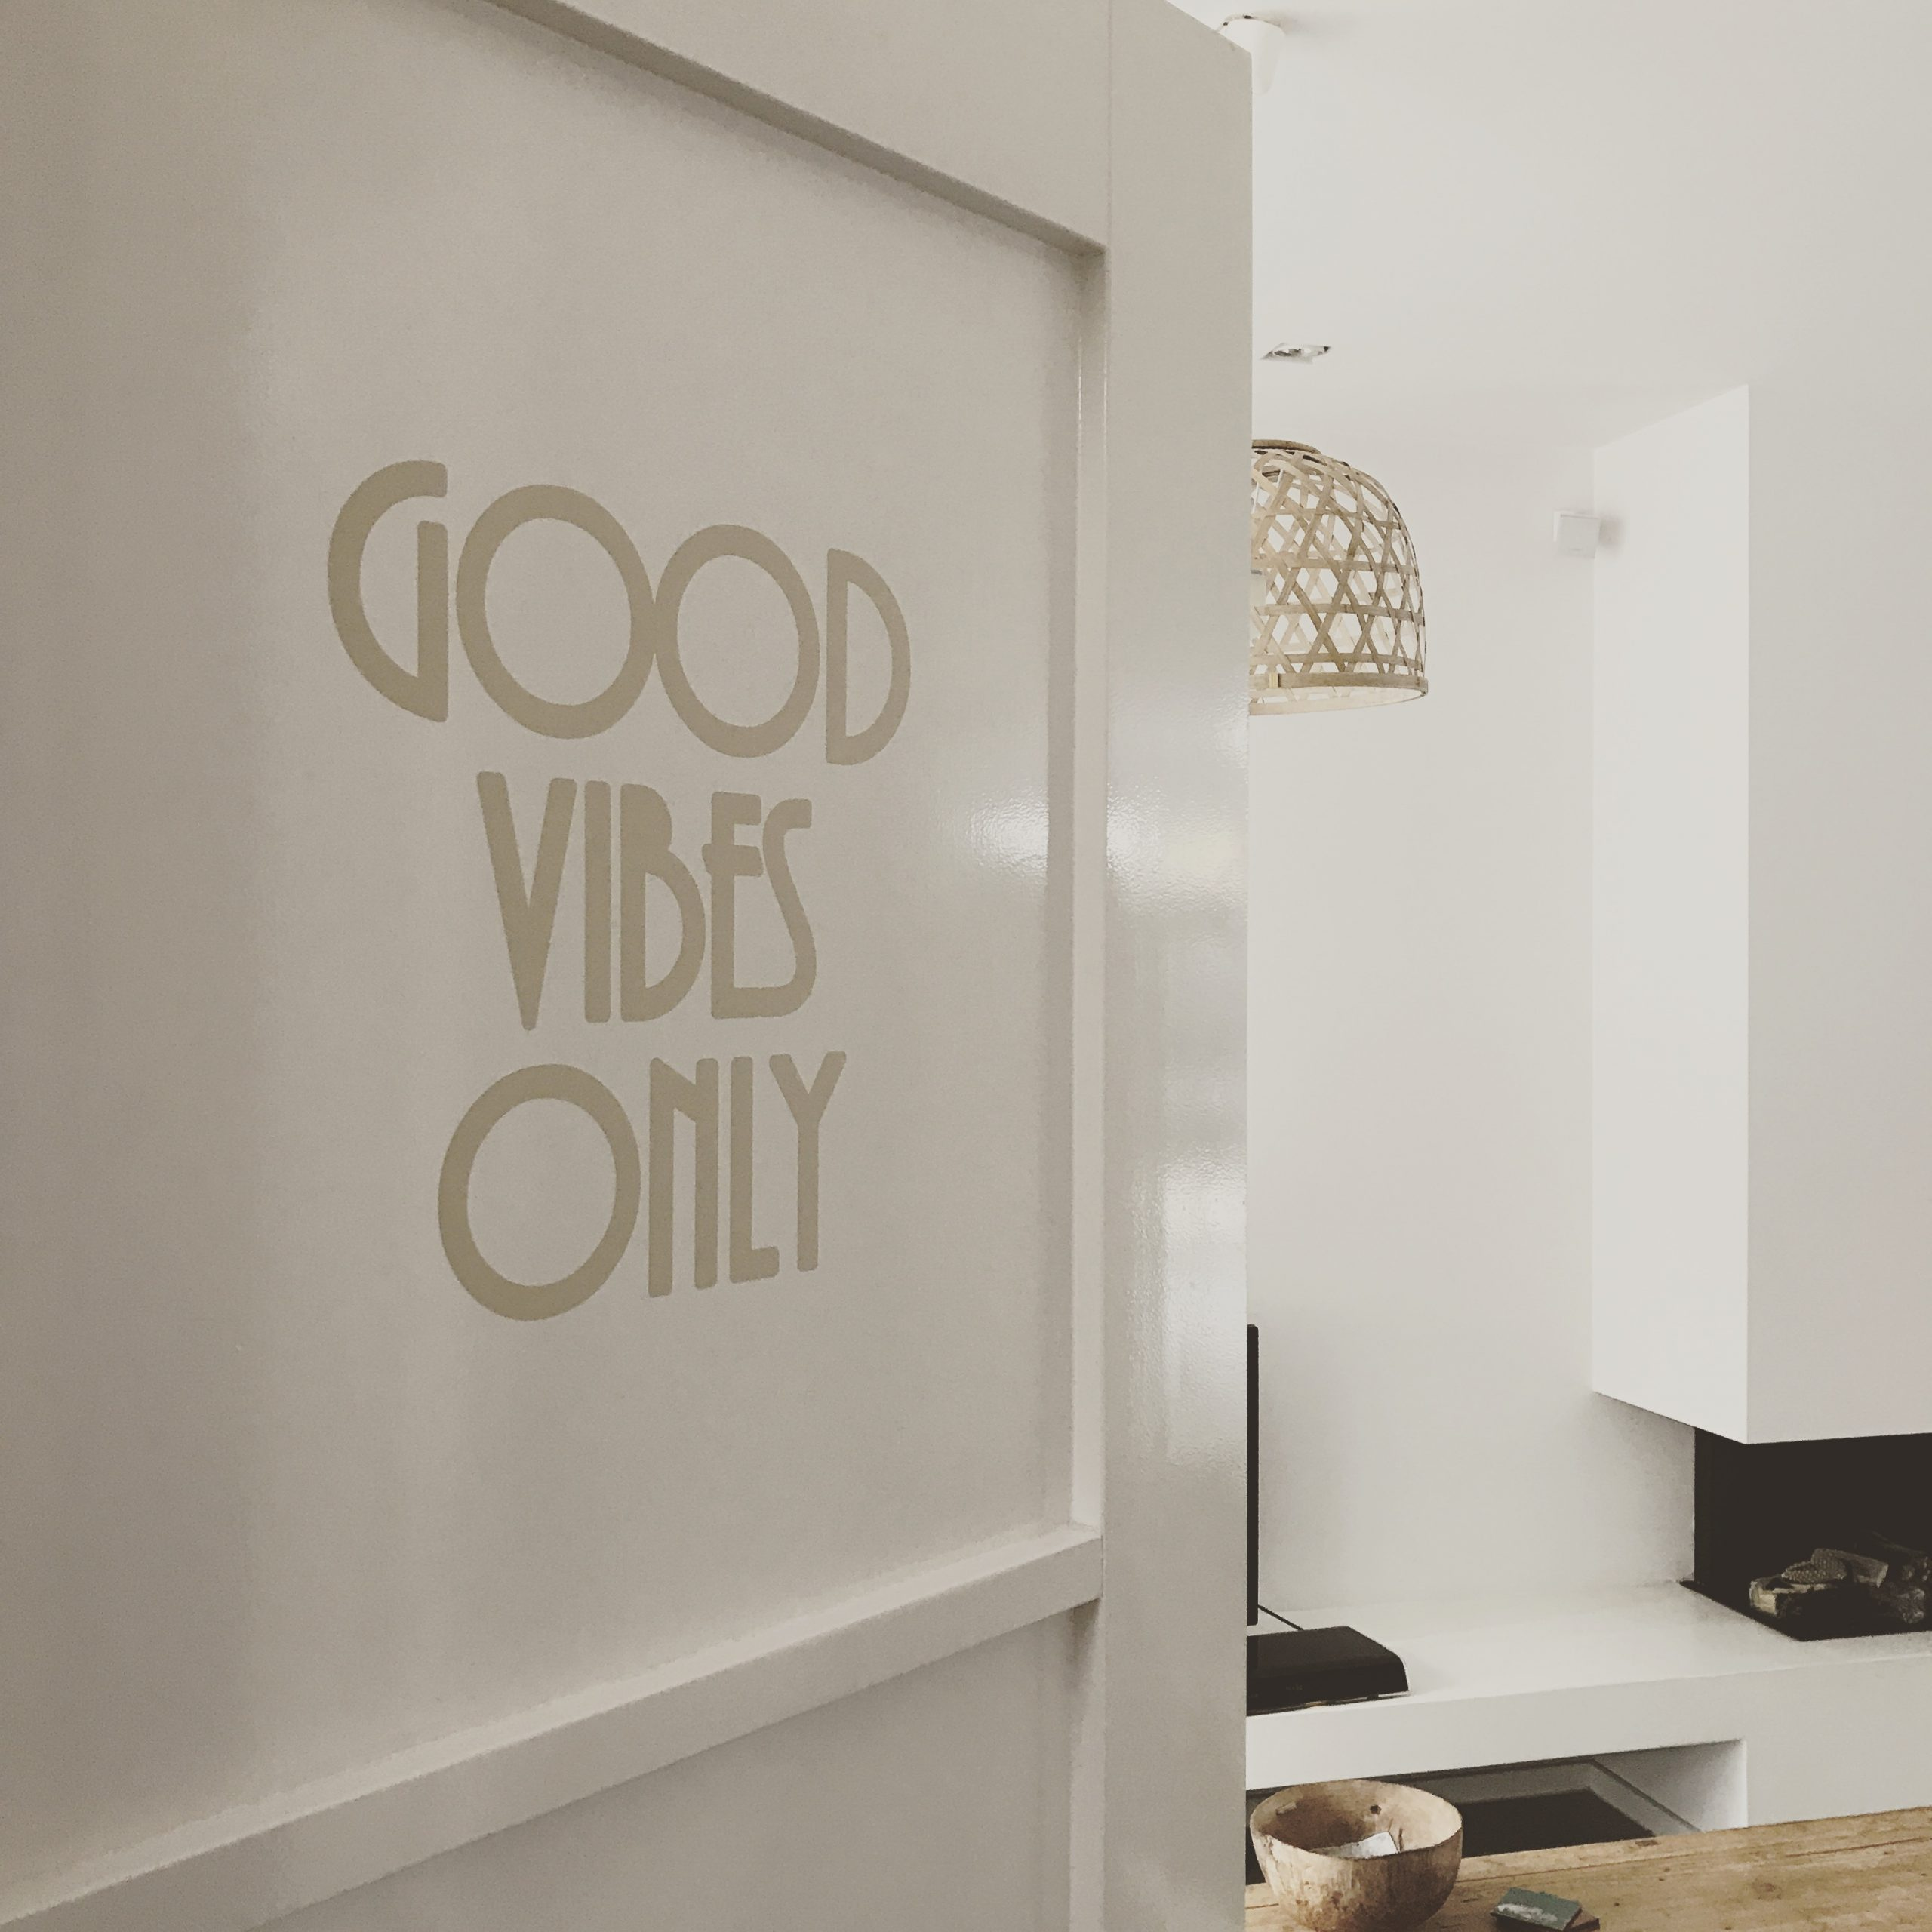 good vibes only 3